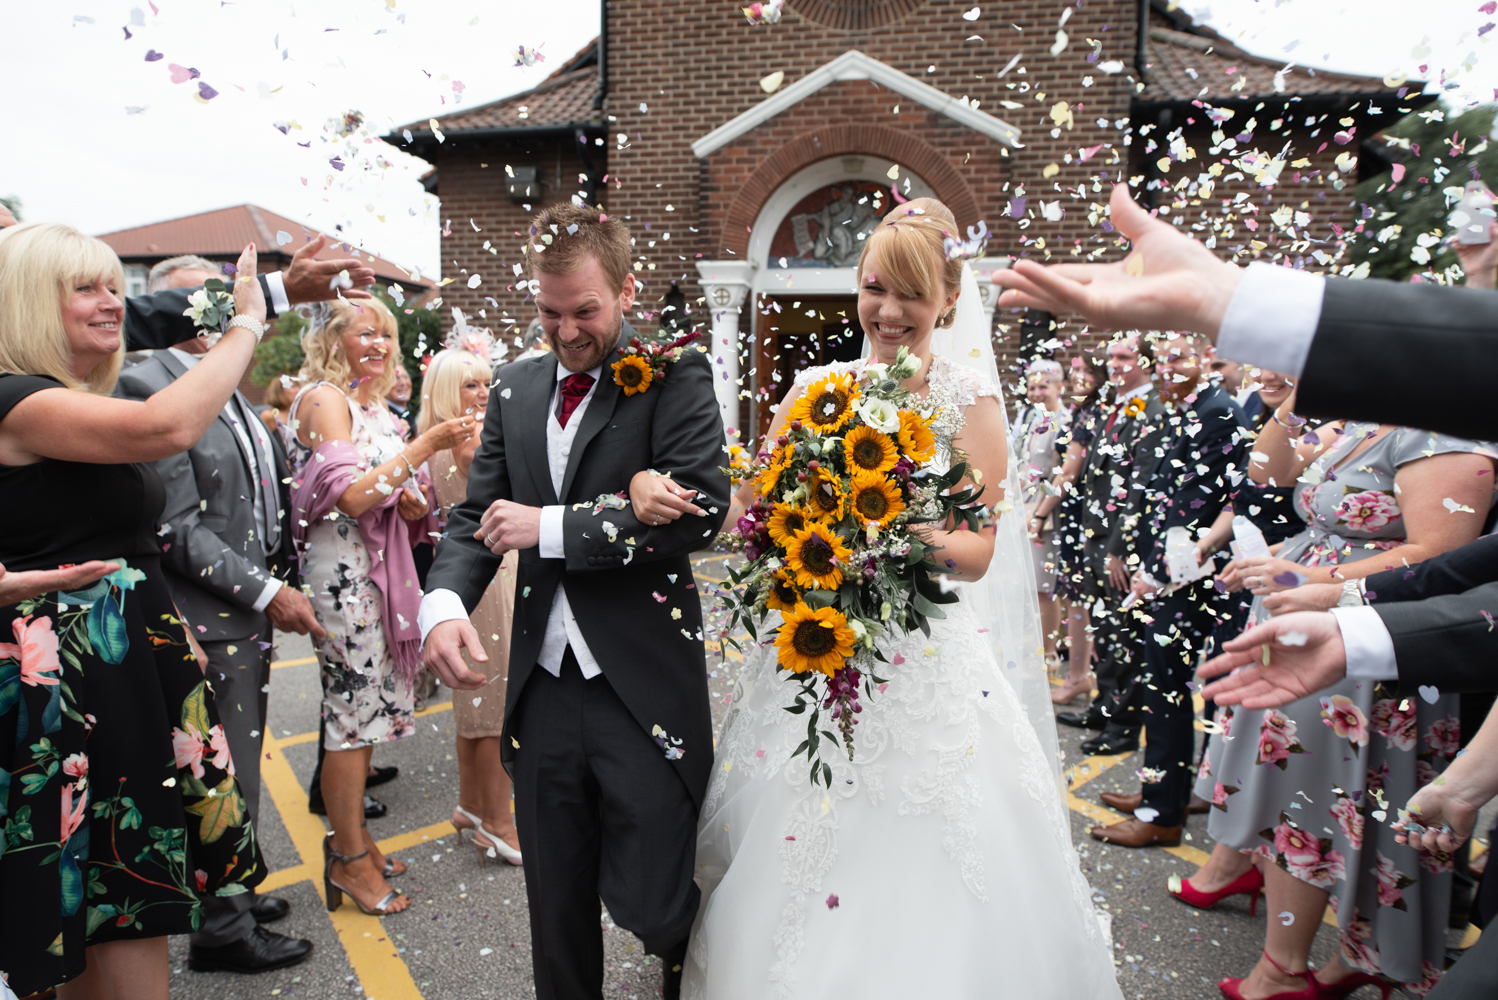 The bride and groom in an avalanche of confetti